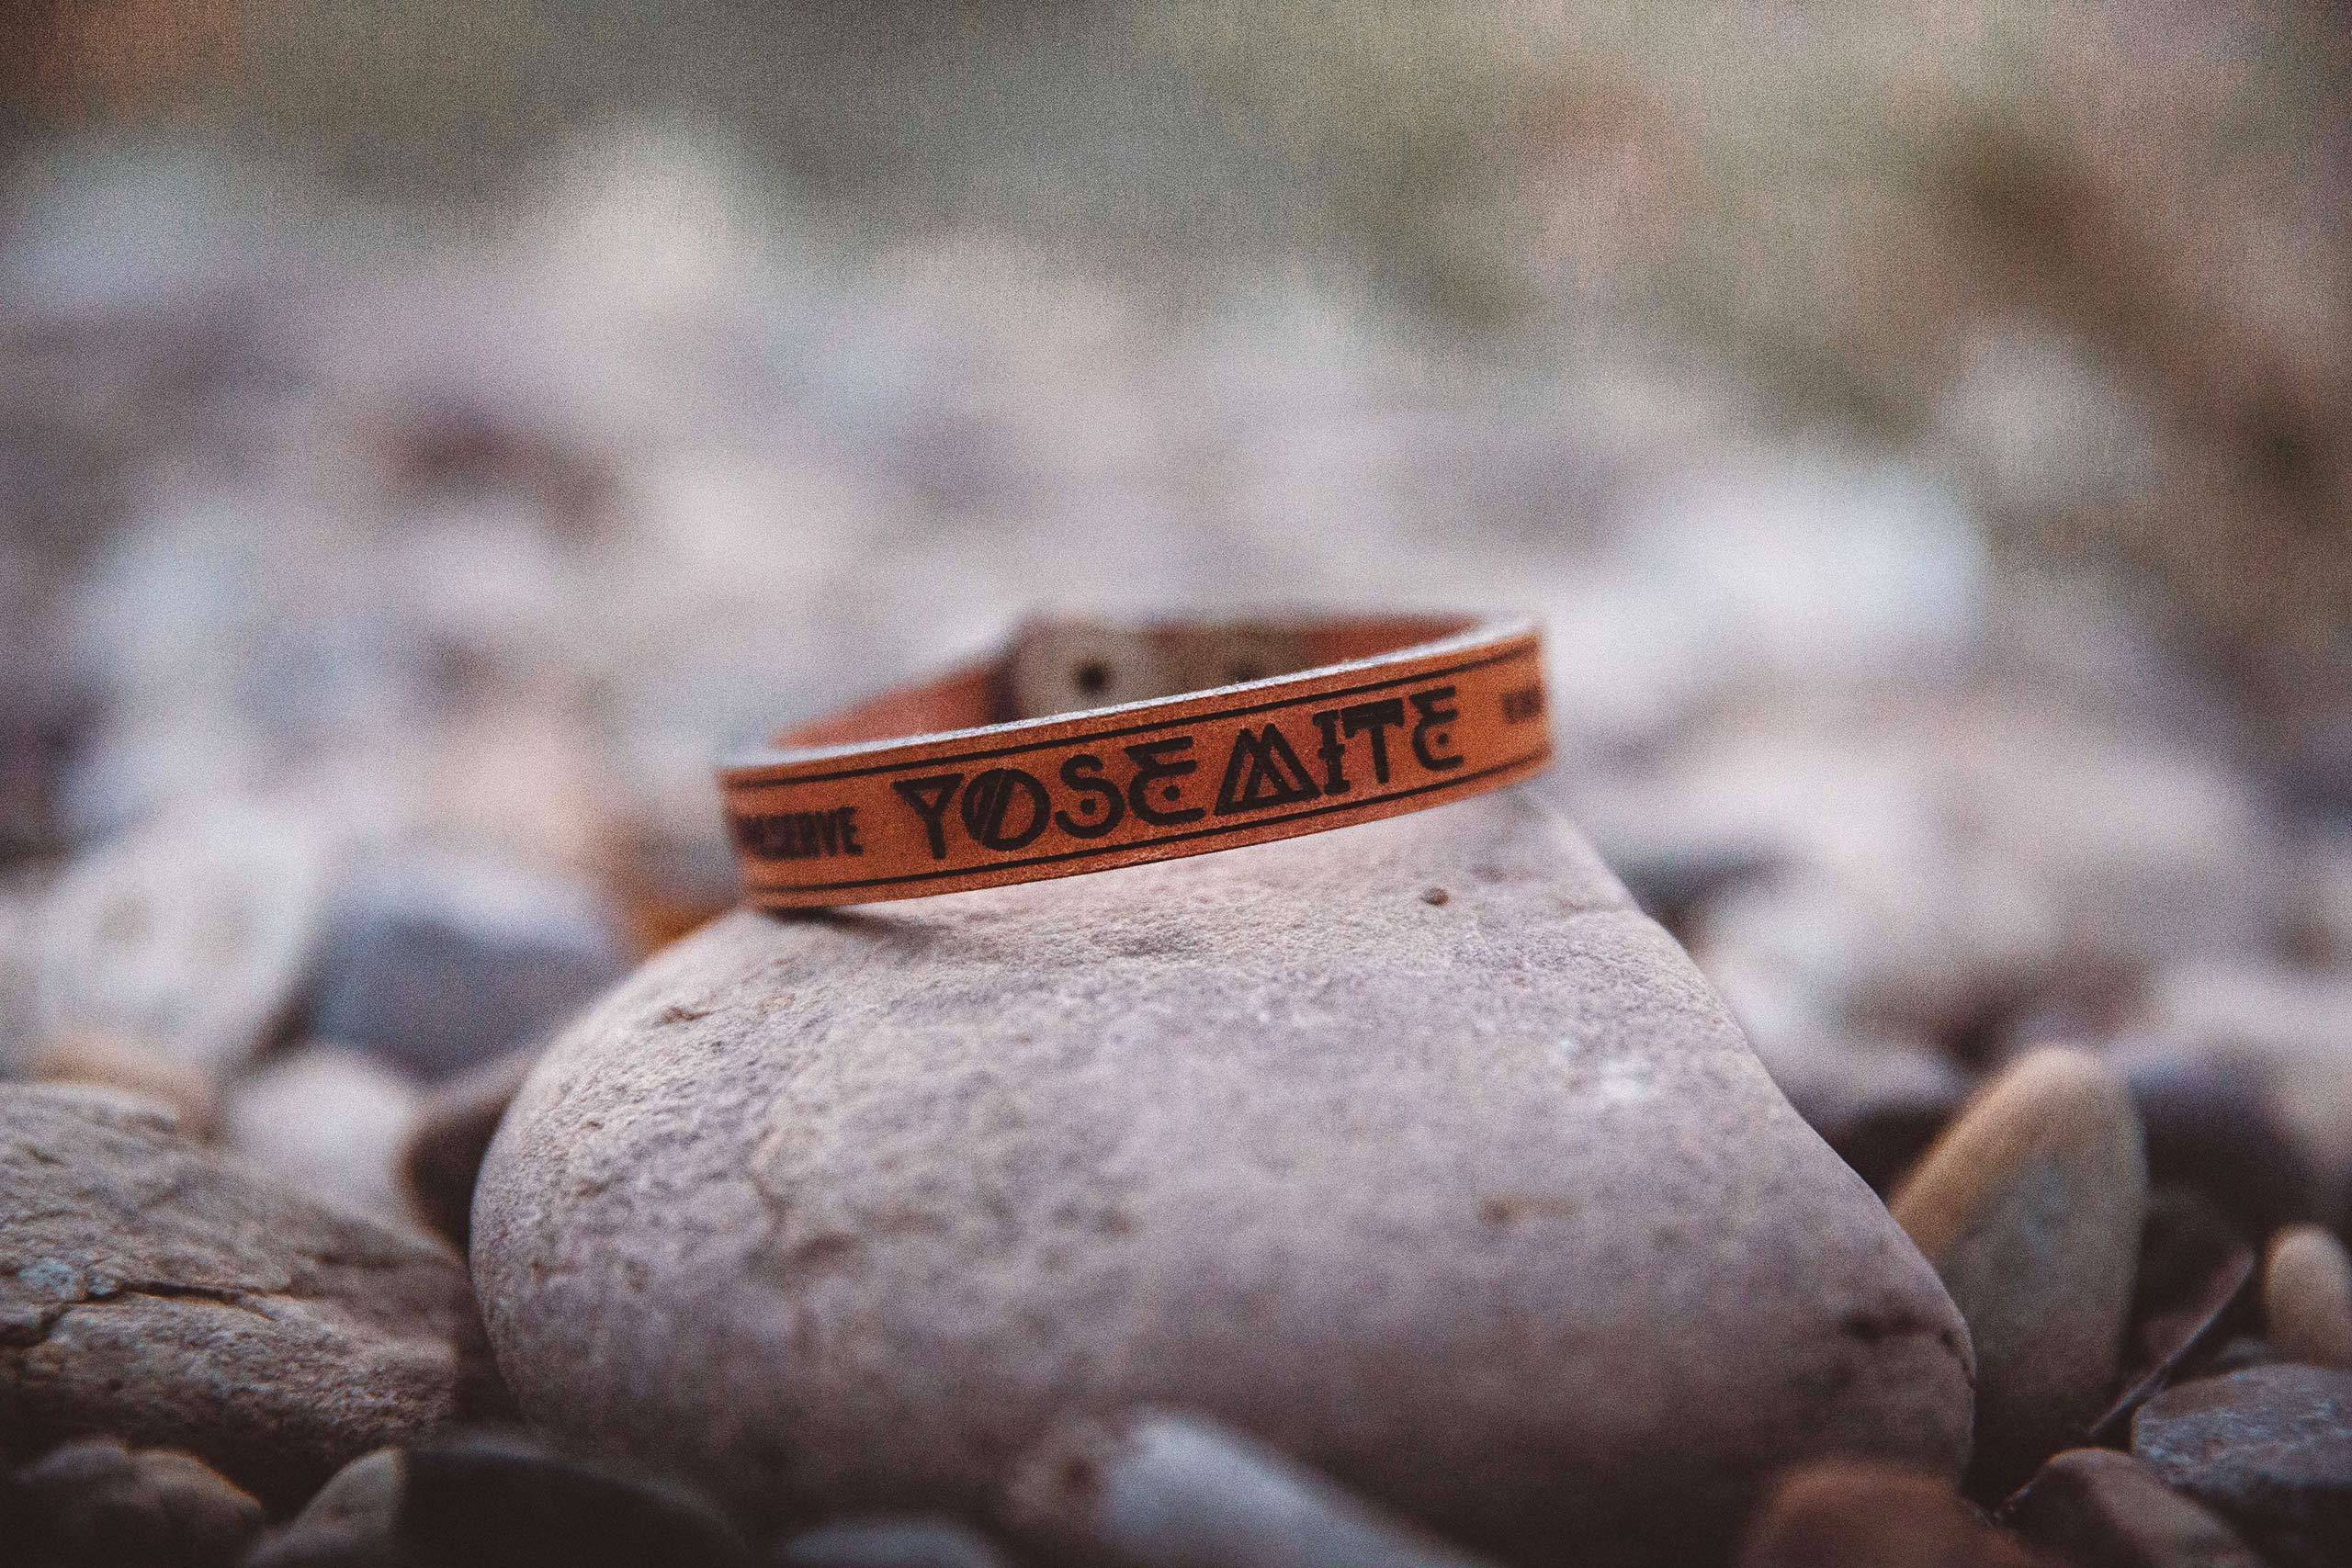 The Parks Limited Edition Leather Yosemite Bracelets